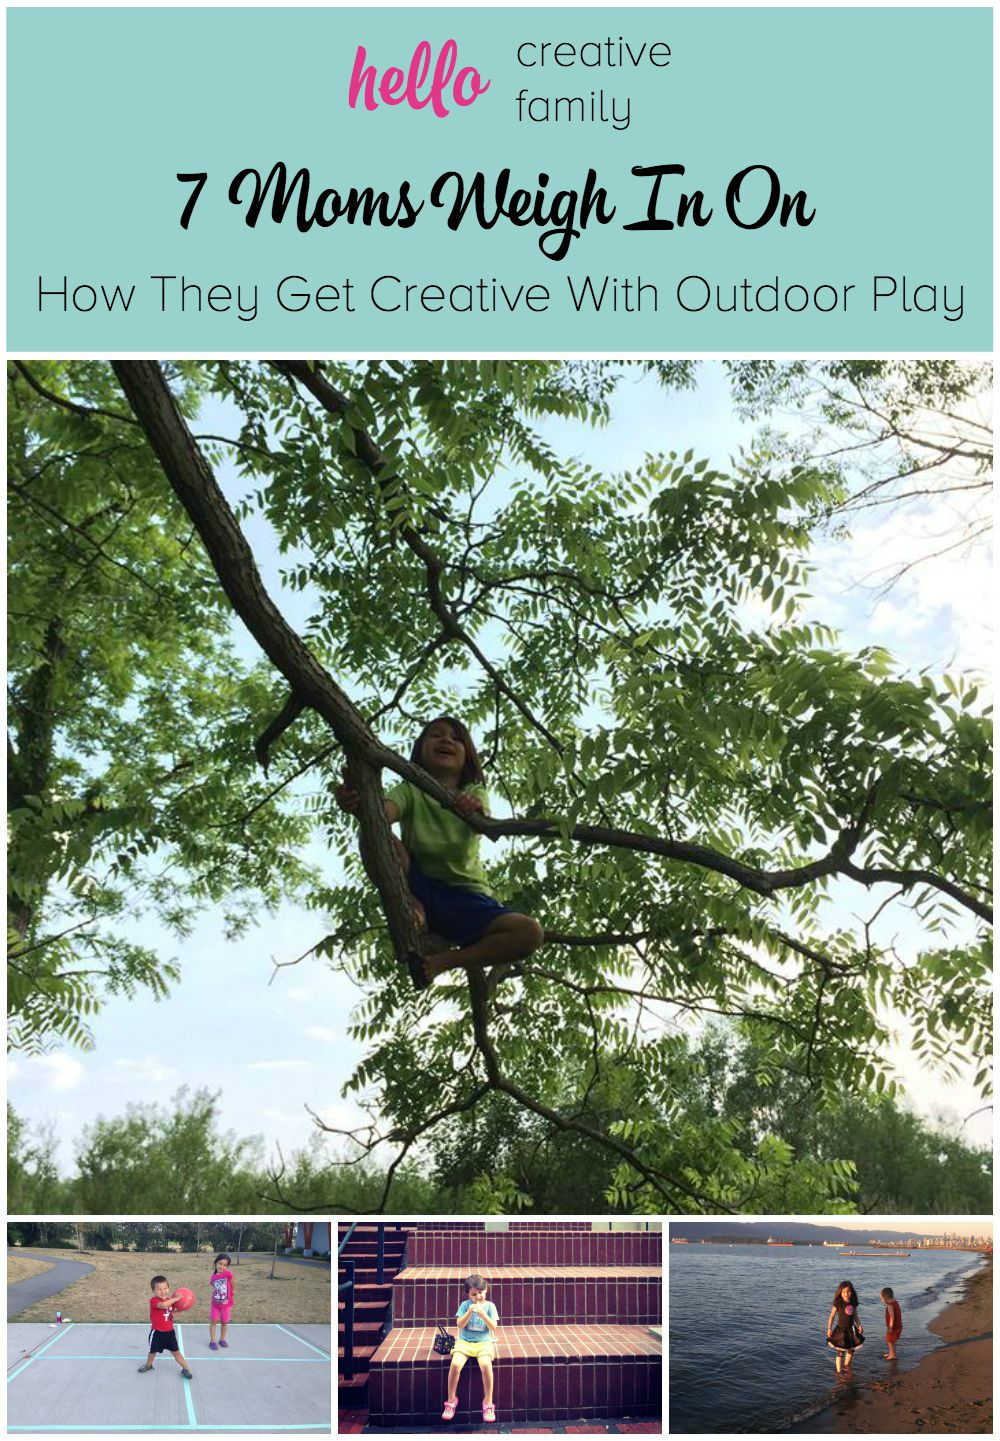 How do you spend your outdoor time with your kids 7 Moms Weigh In On How They Get Creative With Outdoor Play on Hello Creative Family